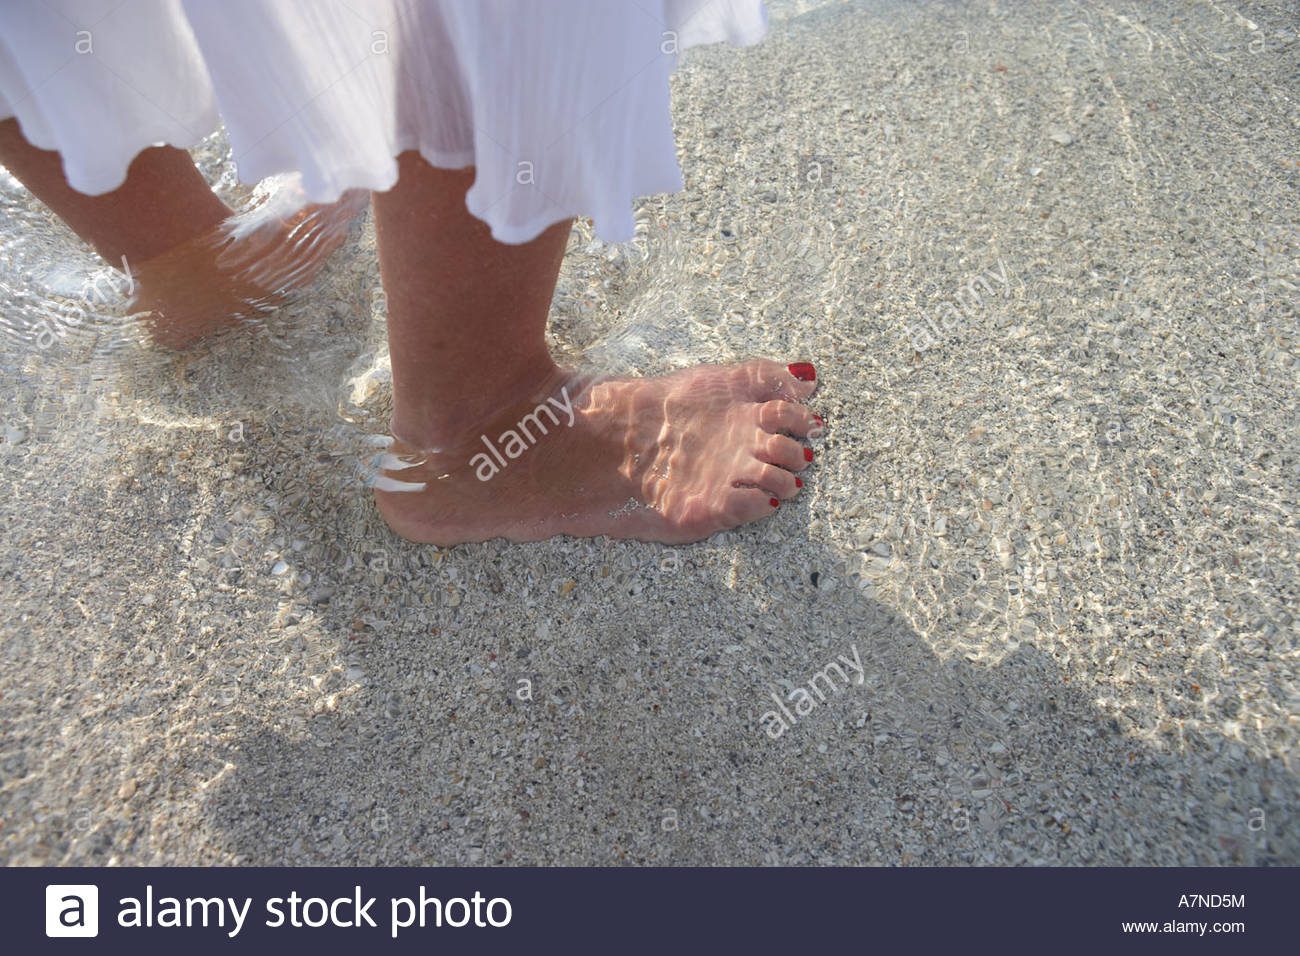 Woman standing on beach ankle deep in sea water low section focus on feet close up side view - Stock Image